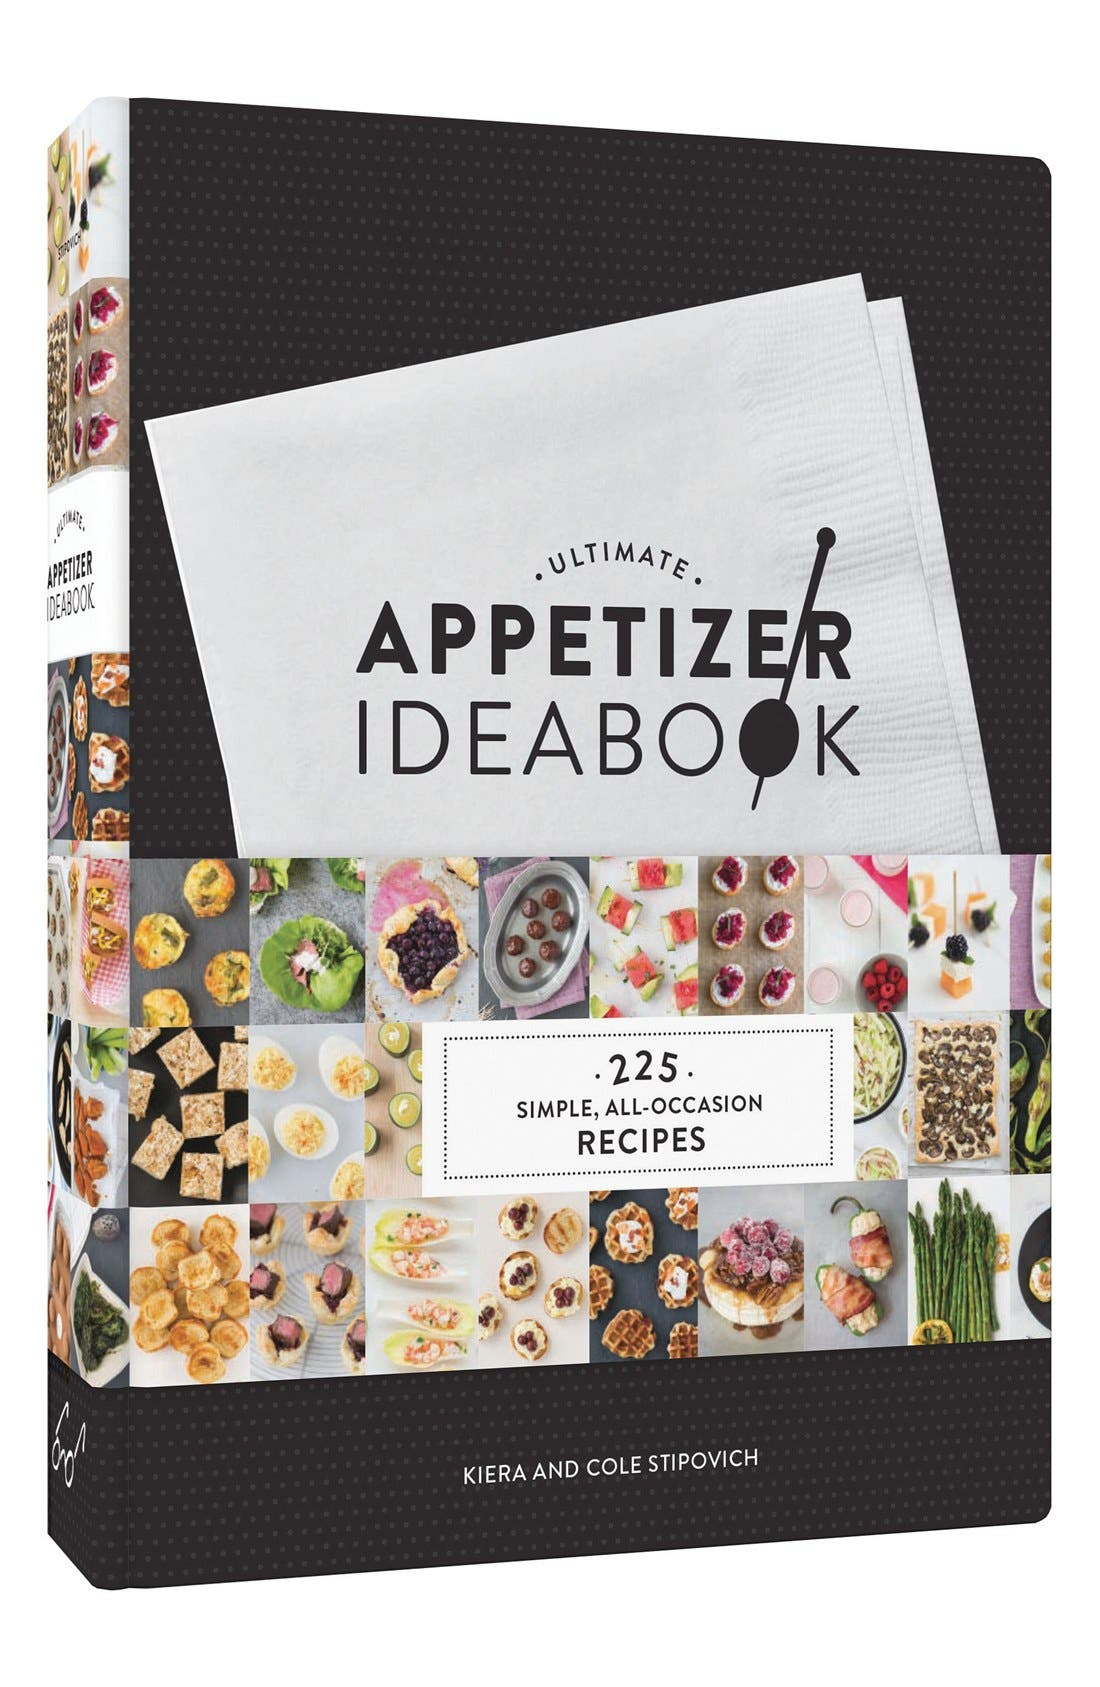 'Ultimate Appetizer Ideabook' Book,                             Alternate thumbnail 5, color,                             001